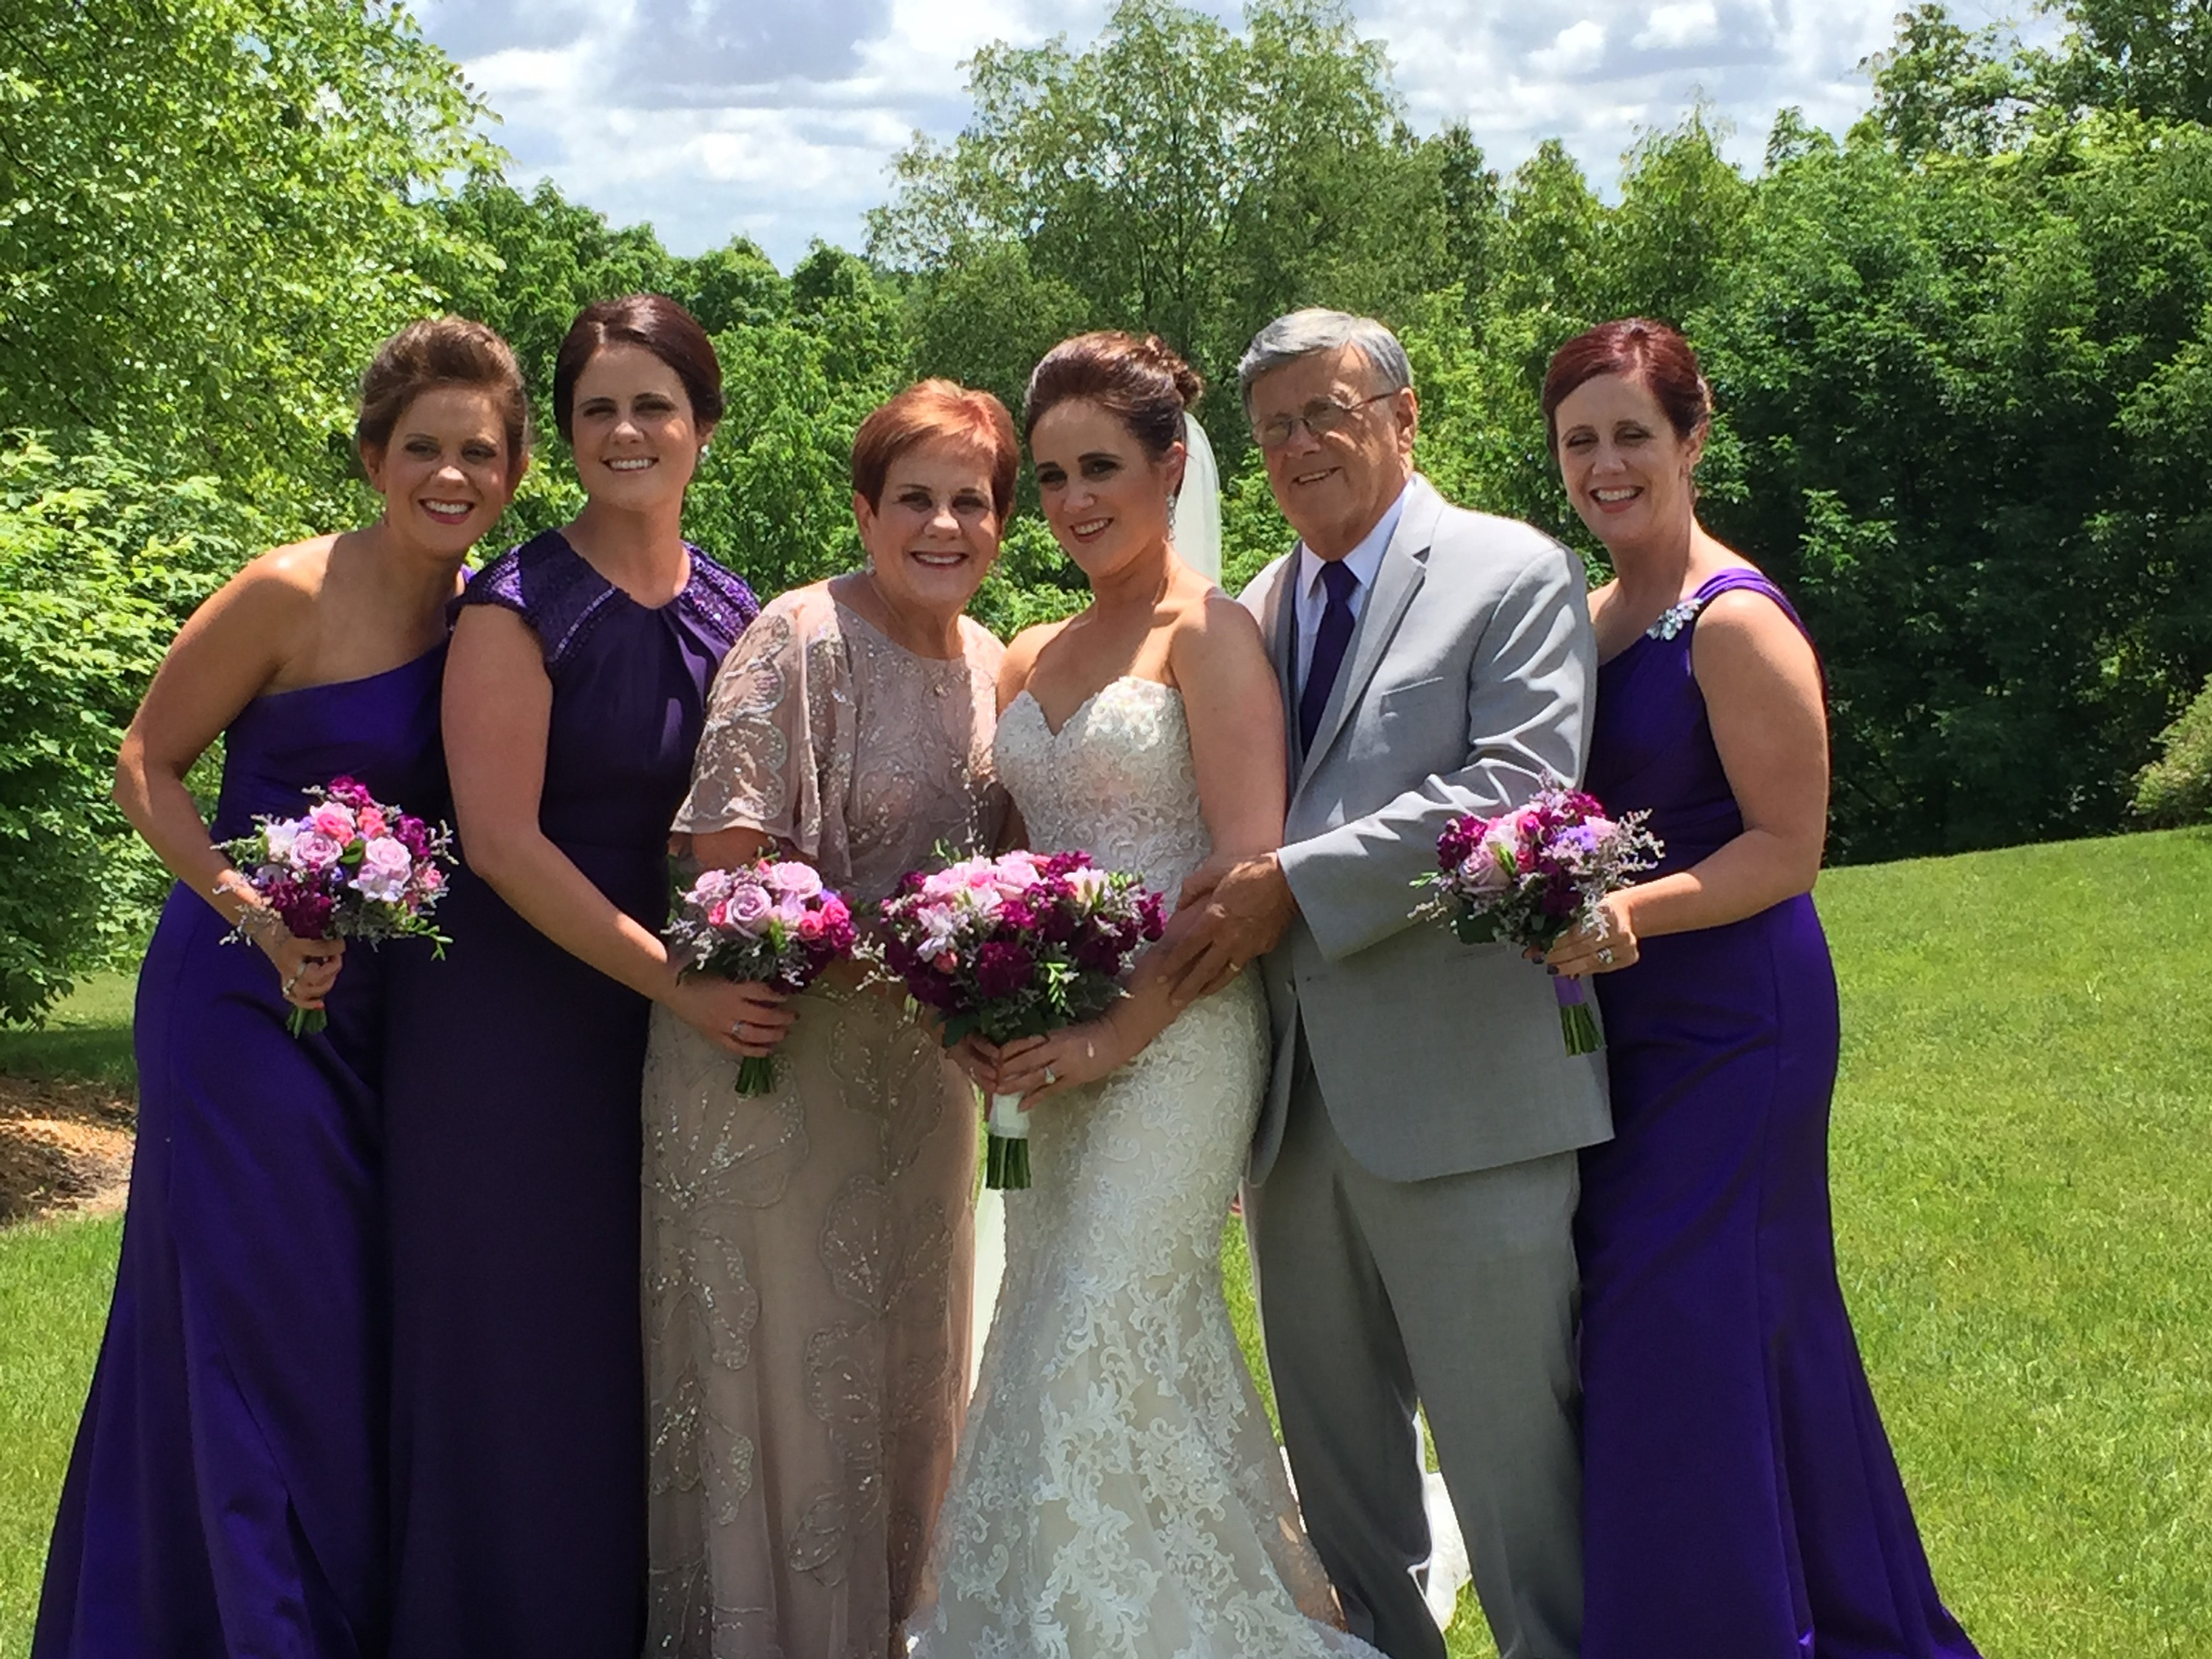 Photo caption: (L-R): Daughters Patty and Laura, Chuck's wife Bernadette, daughter Jessica, Chuck and daughter/donor, Beth